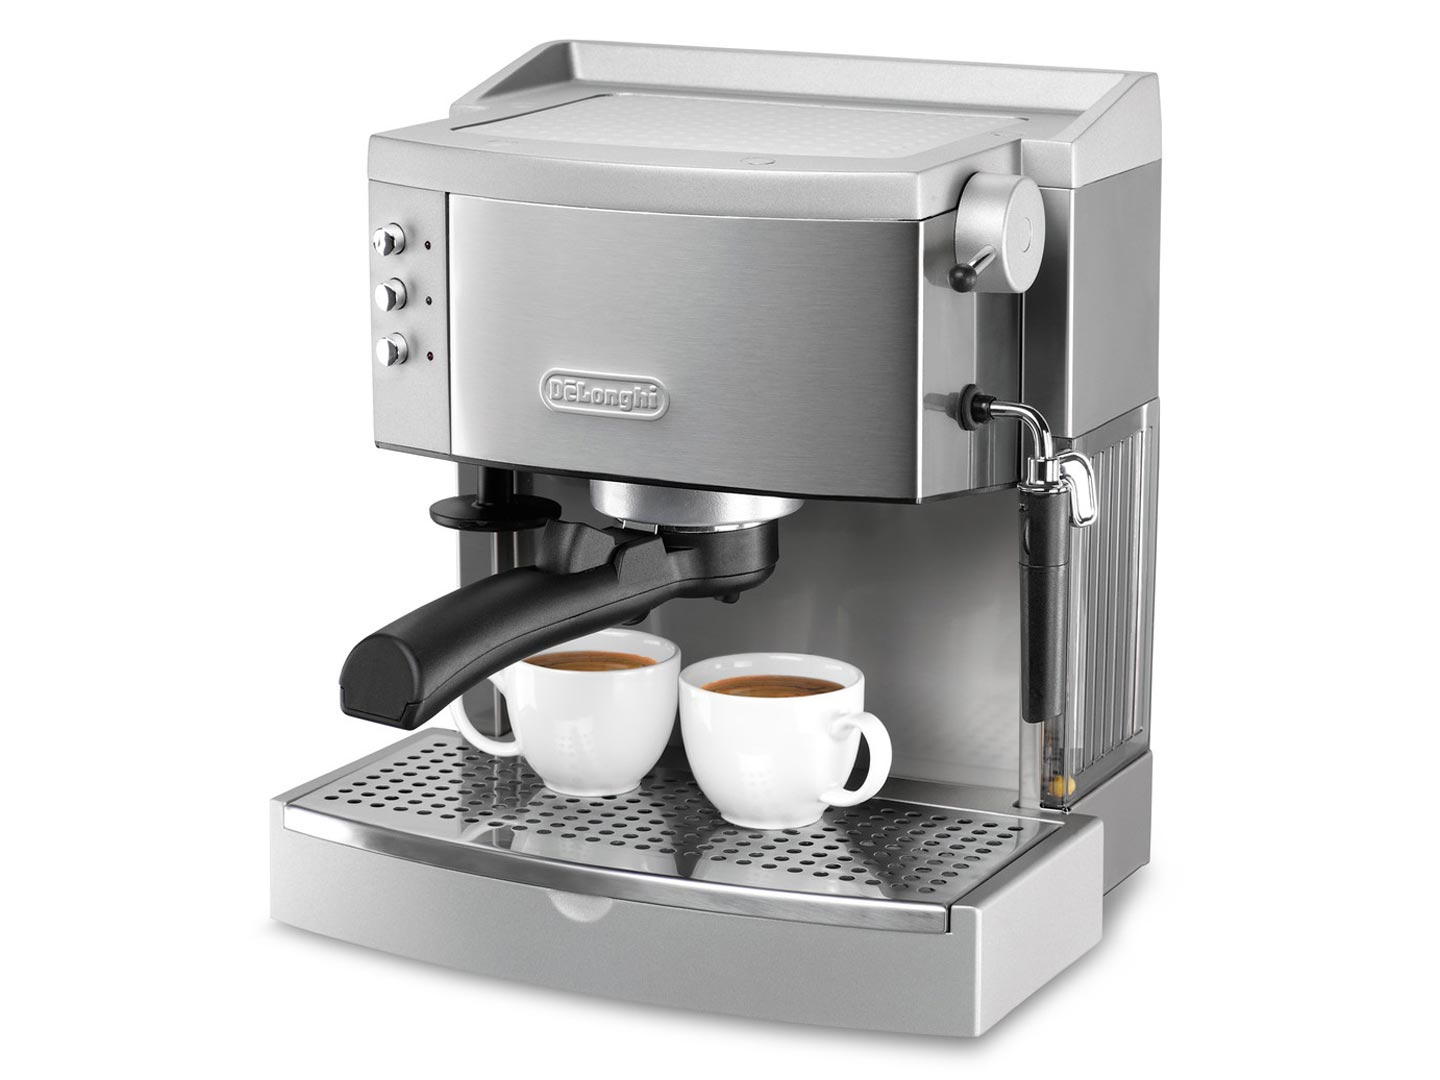 Delonghi Coffee Maker Cleaning Instructions : DeLonghi EC702 15-Bar-Pump Espresso Maker Review TechLogitic